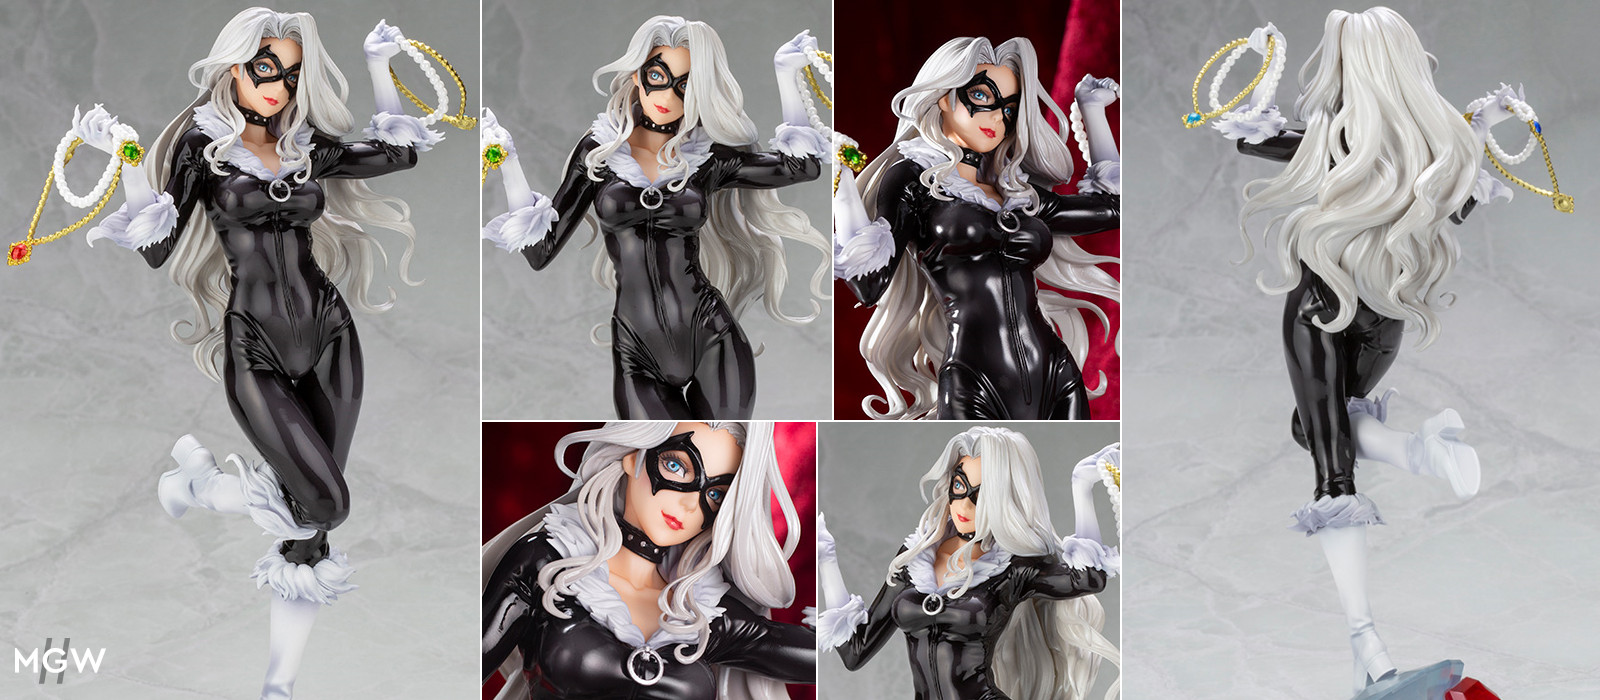 Black Cat Steals Your Heart by Kotobukiya from MARVEL Bishoujo